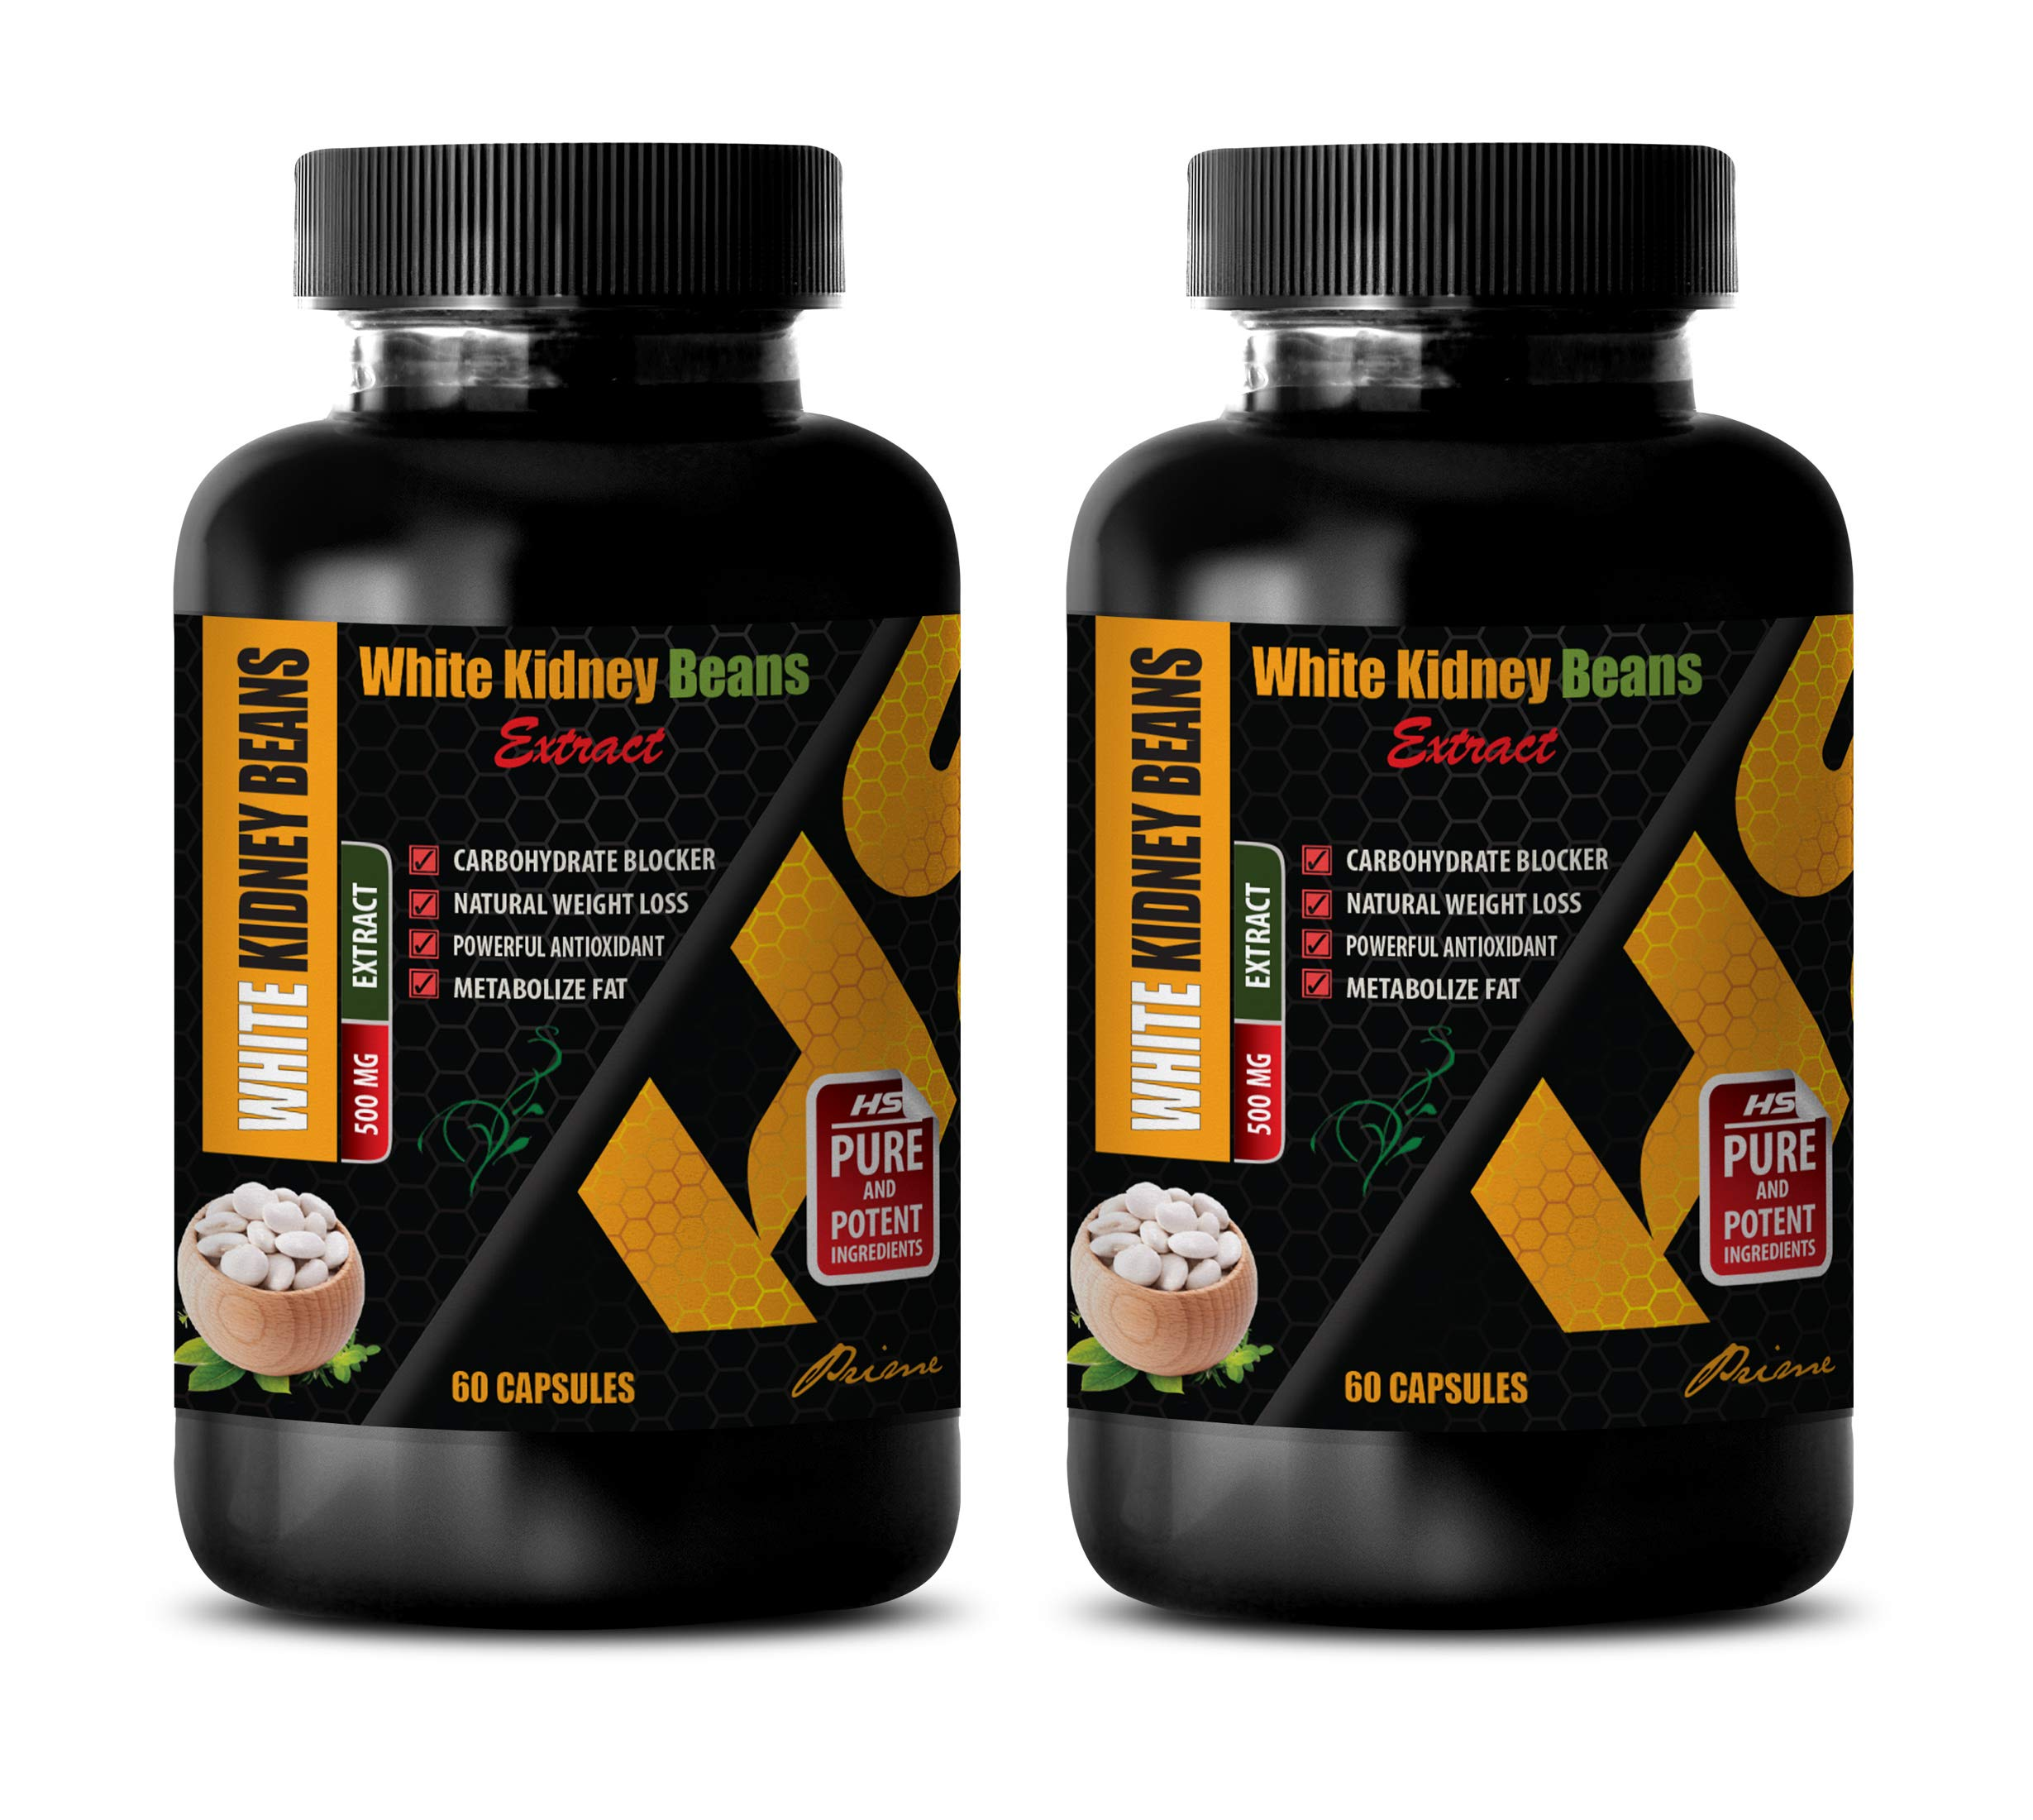 carb blockers Weight Loss and Fat Blocker - White Kidney Beans 500 MG - Prime Extract - Weight Loss Pills for Men and Women - 2 Bottles (120 Capsules)